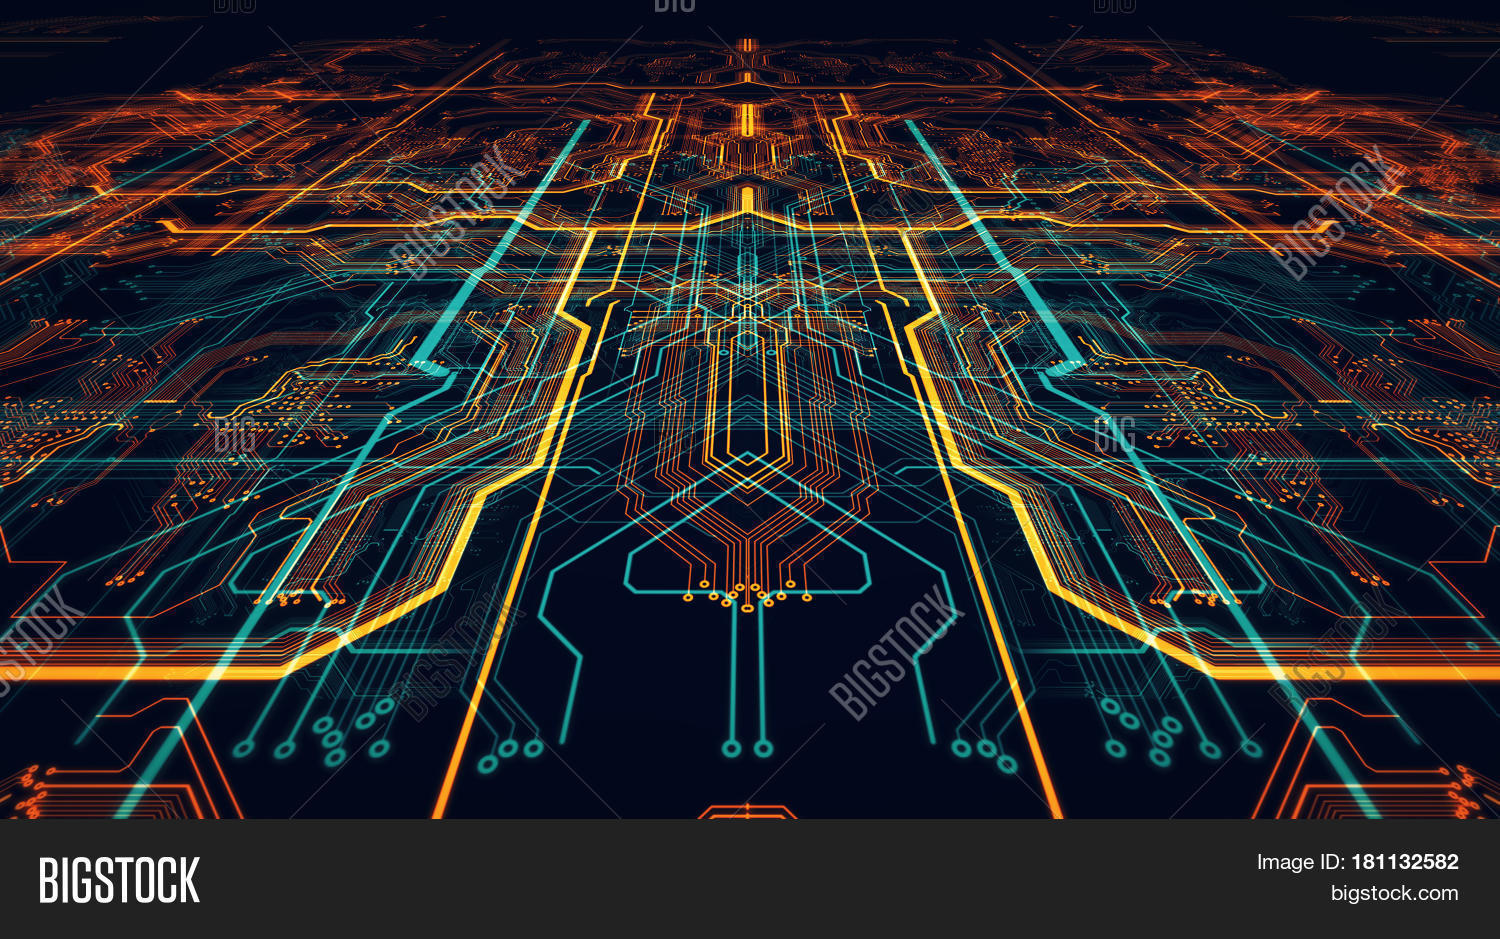 Circuit Board Image Photo Free Trial Bigstock Computer Code And Background Illustration Futuristic Server Processing Orange Green Blue Technology Printed